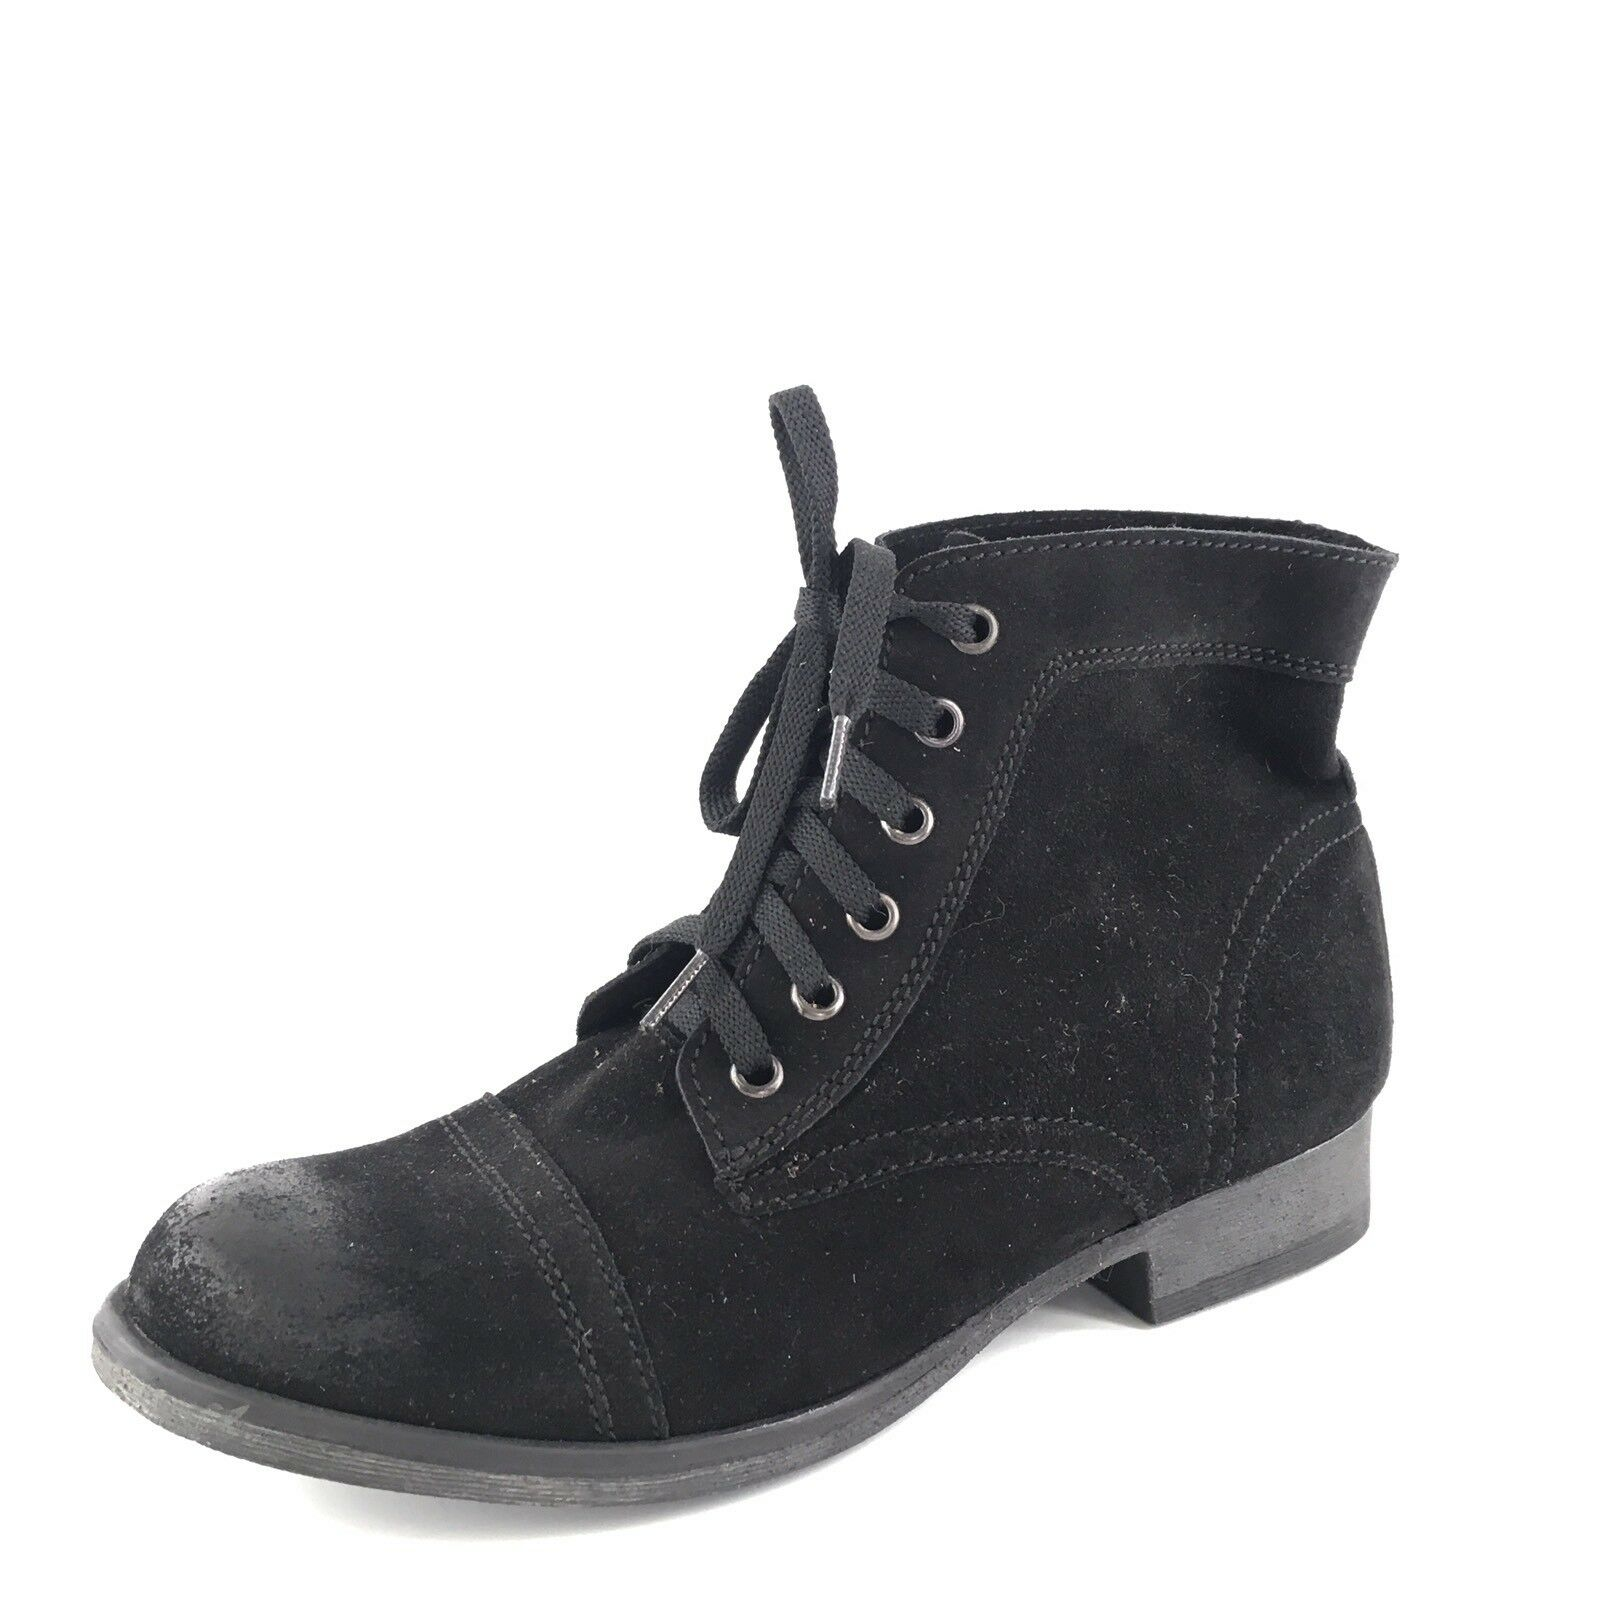 New Zigi Girl Fleet Black Distressed Leather Ankle Boots Women's Size 8 M